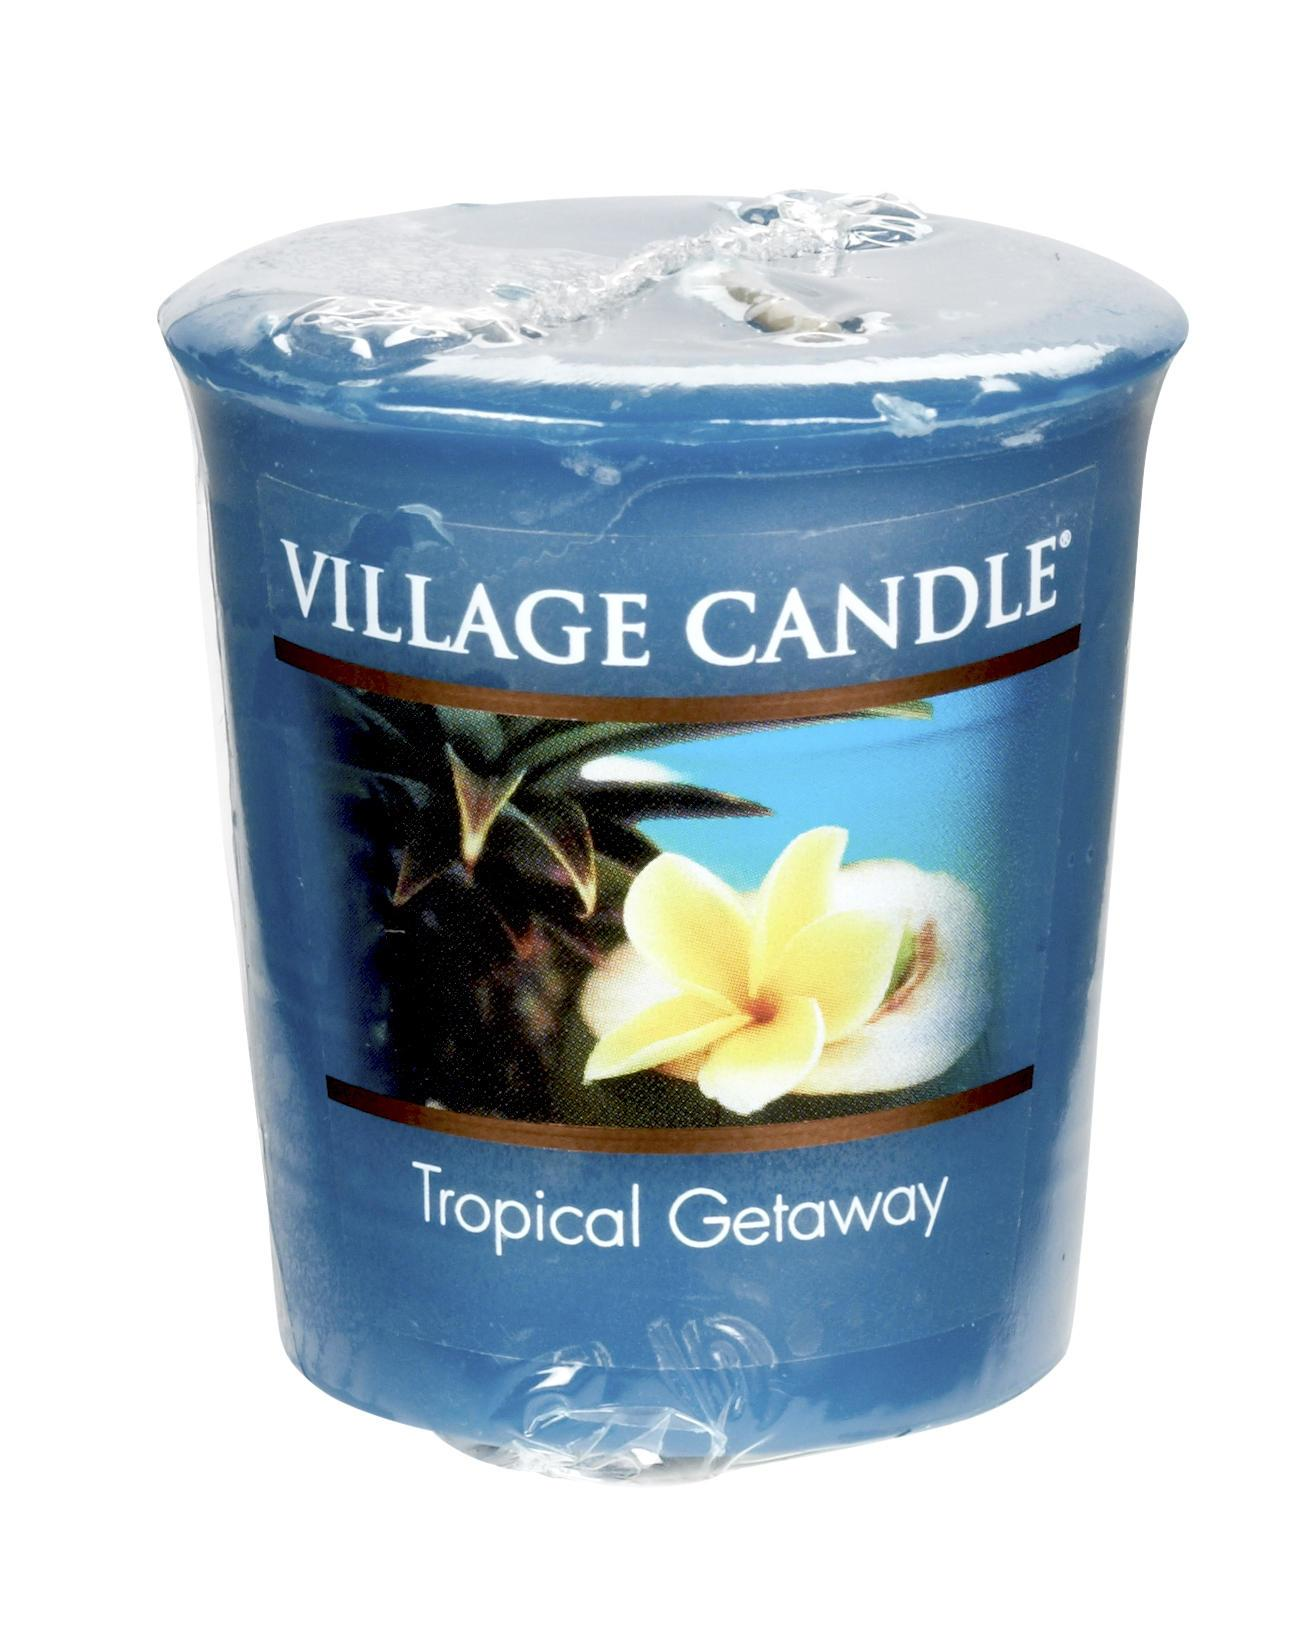 Village Candle Votivní svíčka Village Candle - Tropical Getaway